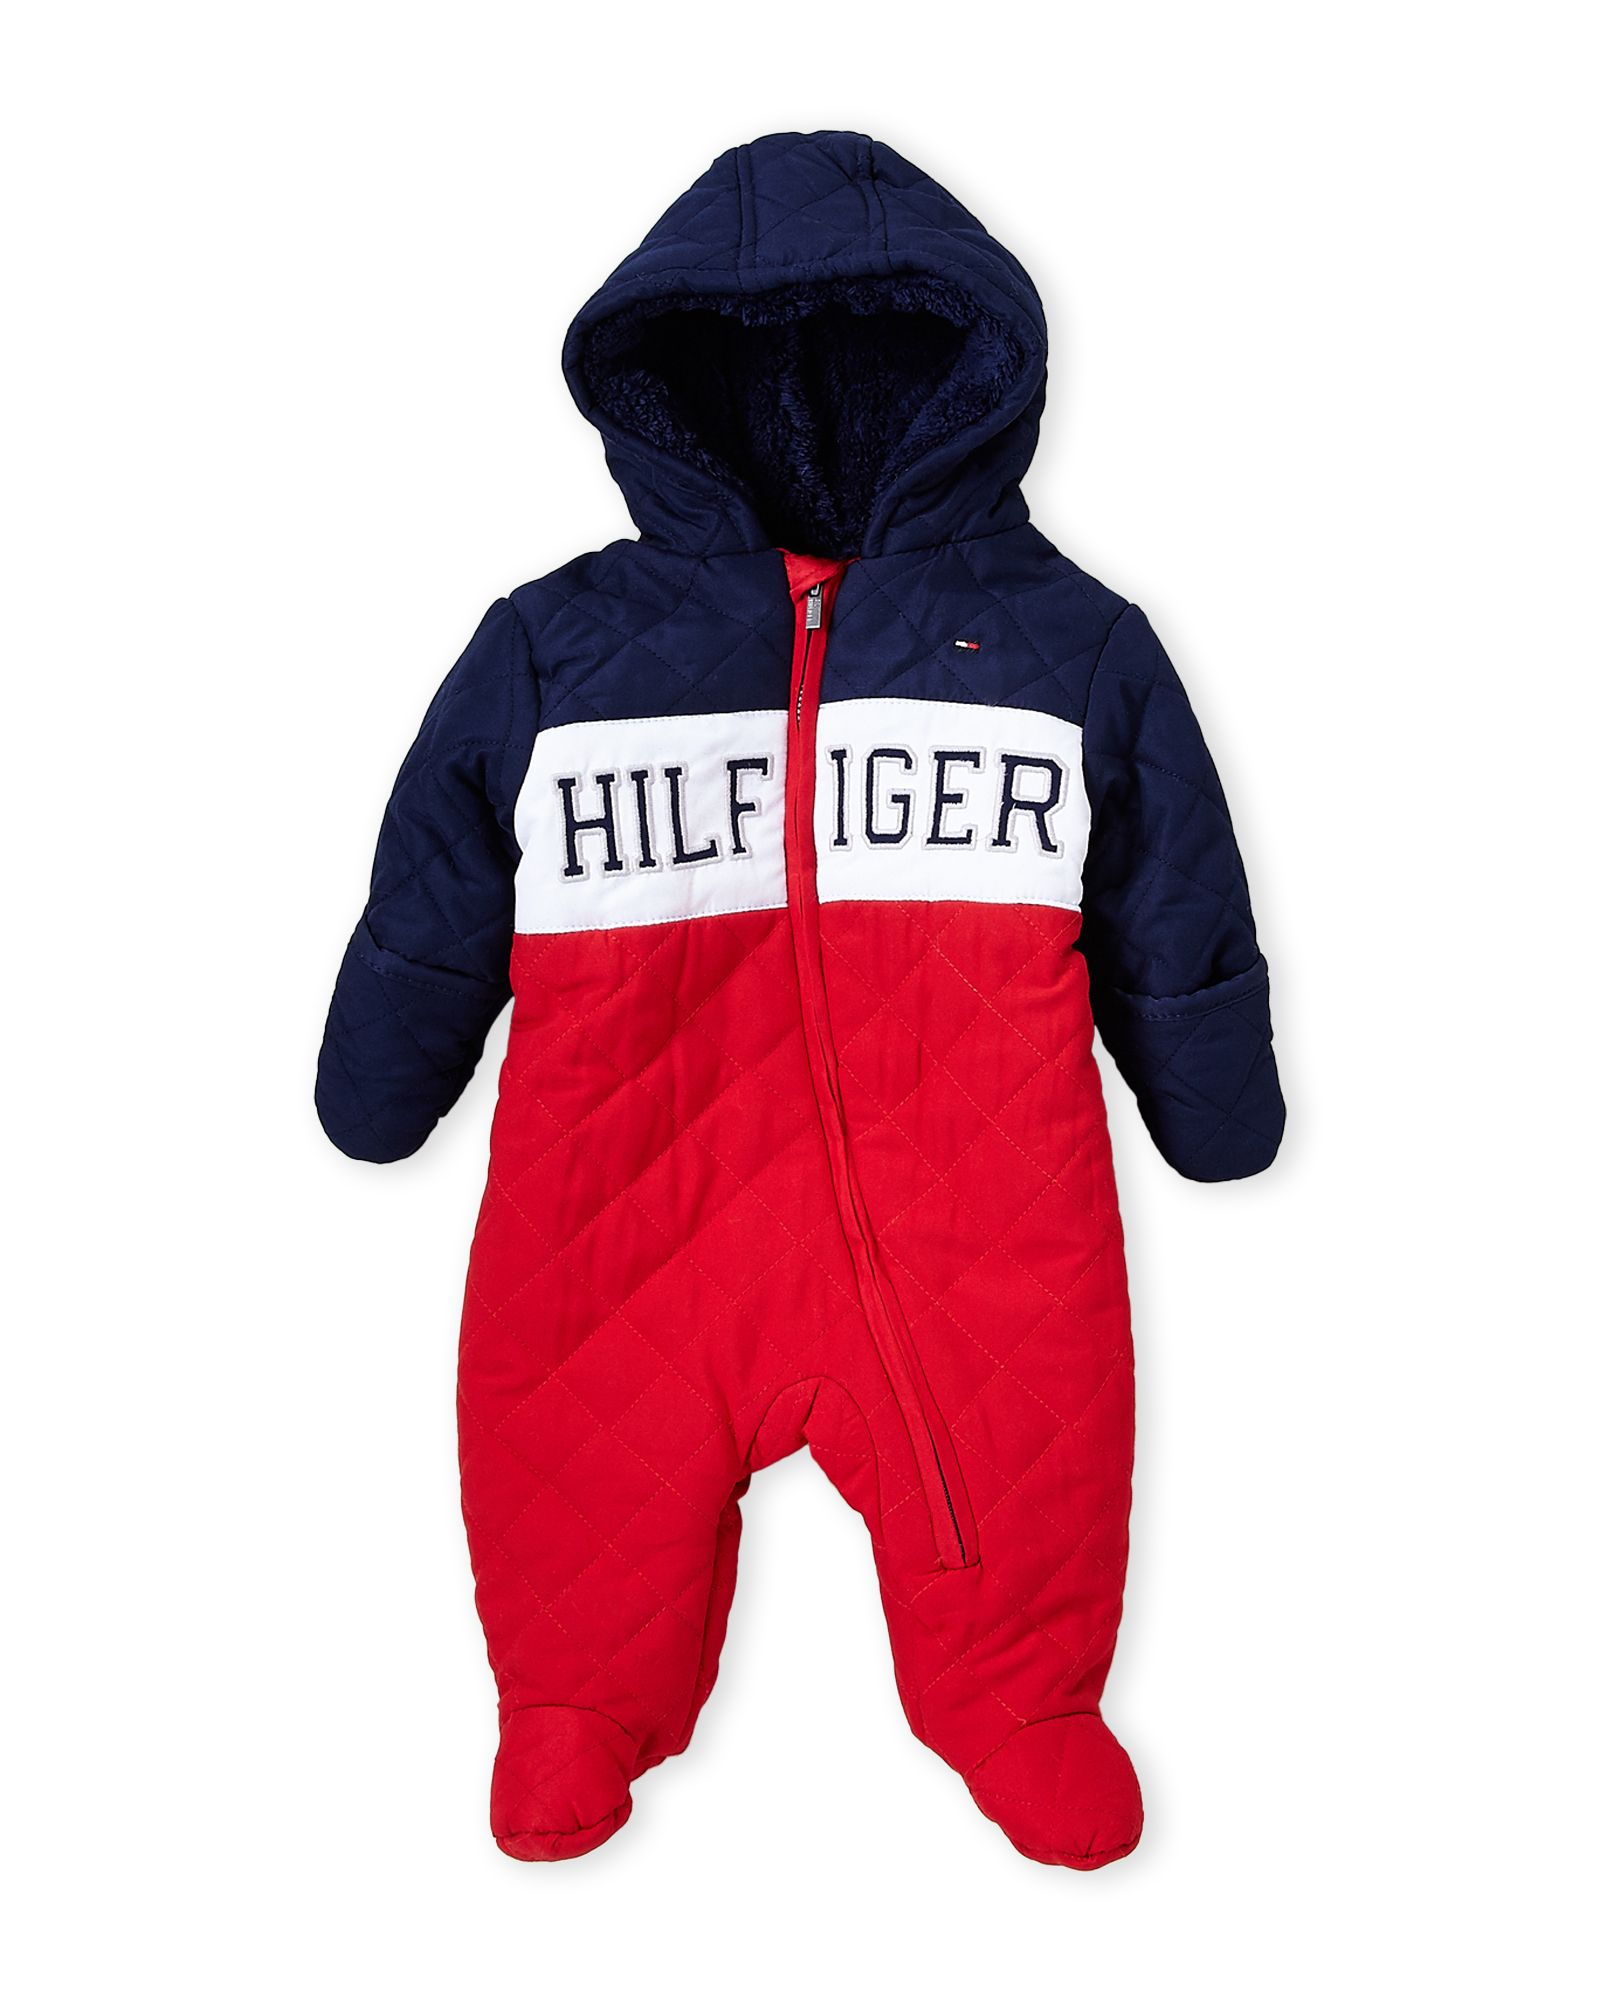 f62845fc2 Newborn Boys) Quilted Hooded Logo Pram | *Apparel & Accessories ...